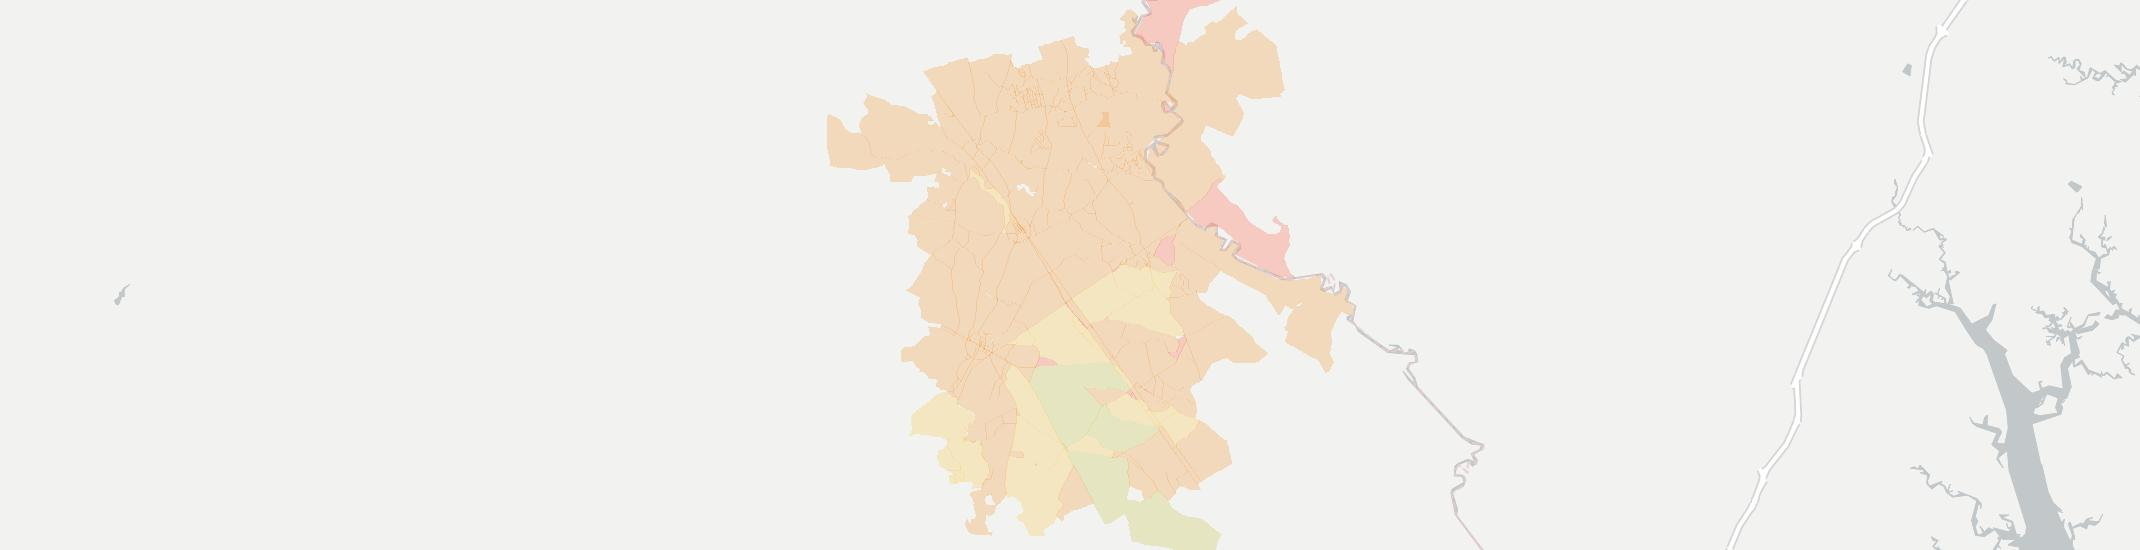 Newington Internet Competition Map. Click for interactive map.